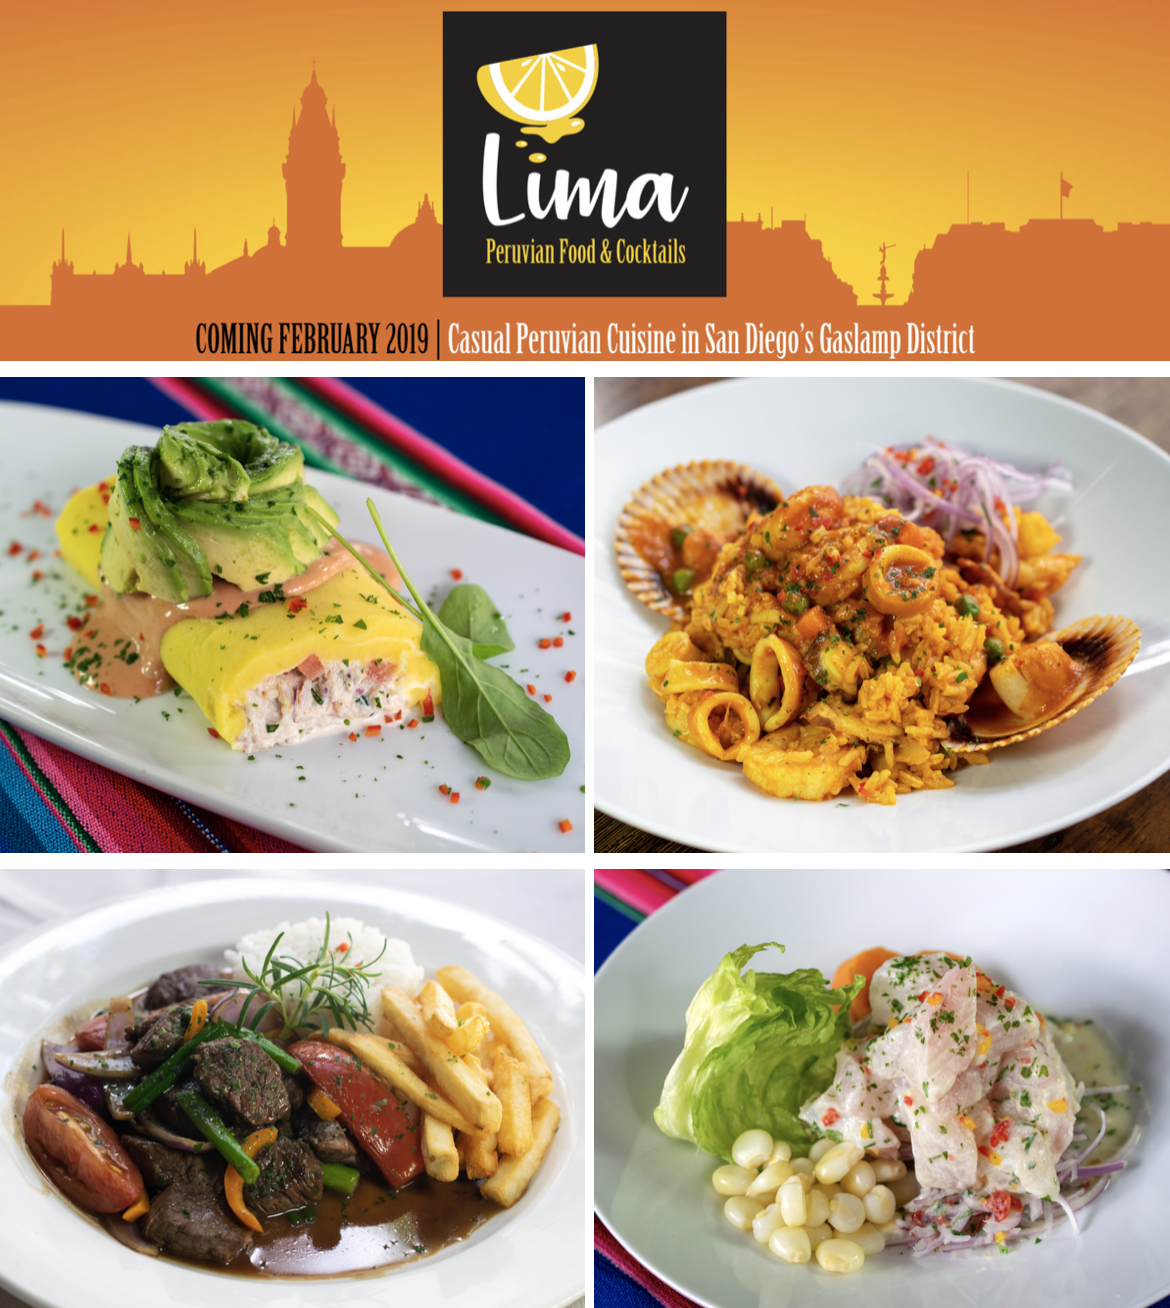 Sandiegoville Lima Peruvian Restaurant To Replace All